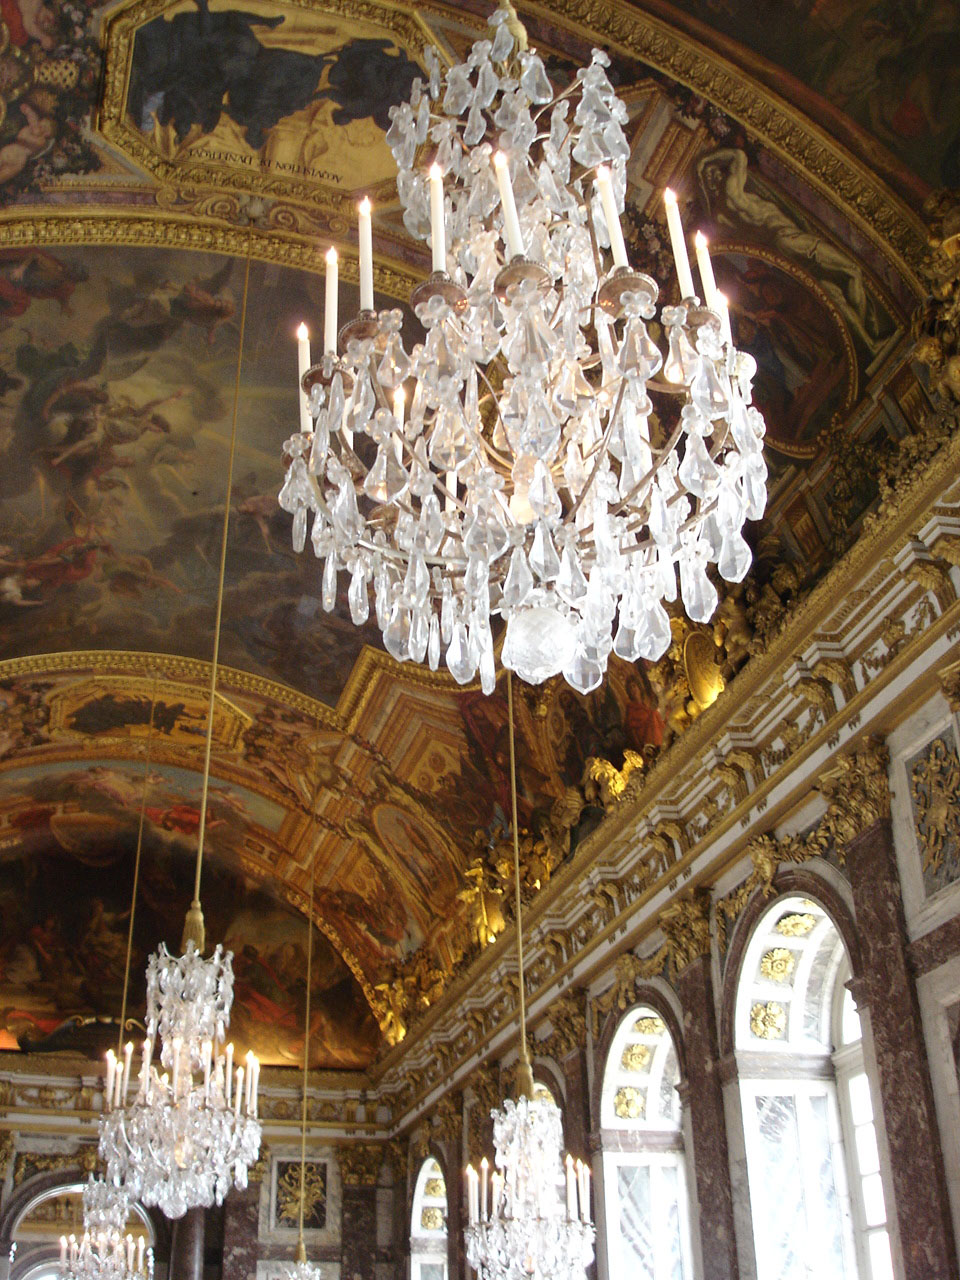 https://upload.wikimedia.org/wikipedia/commons/7/75/Versailles%2C_Galerie_des_glaces.jpg